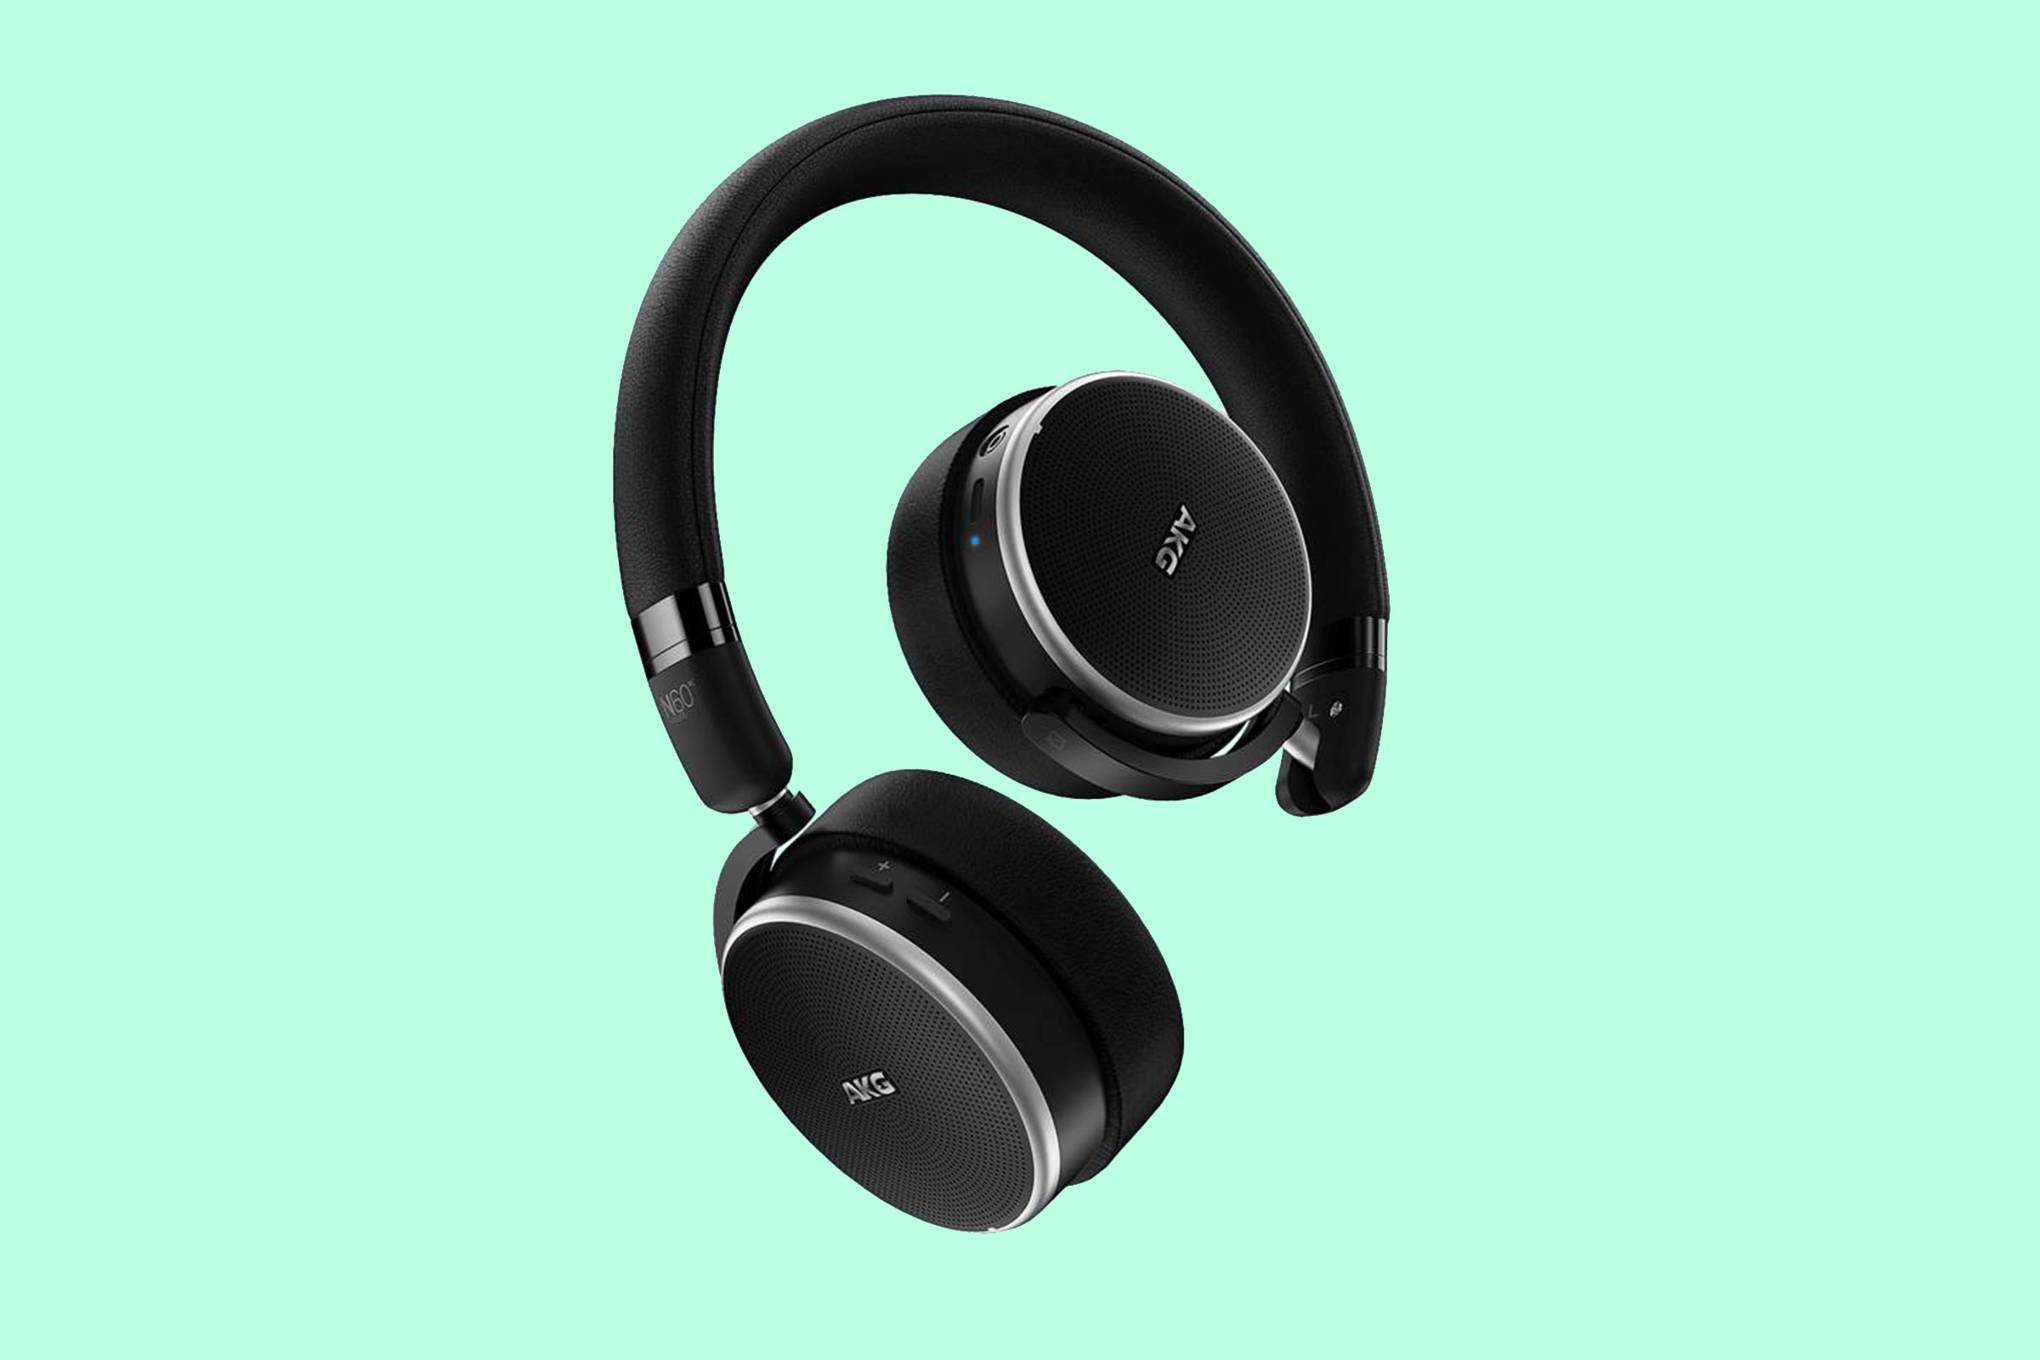 71275f26f3f Best Wireless Headphones 2019: The best Bluetooth headphones right now |  WIRED UK